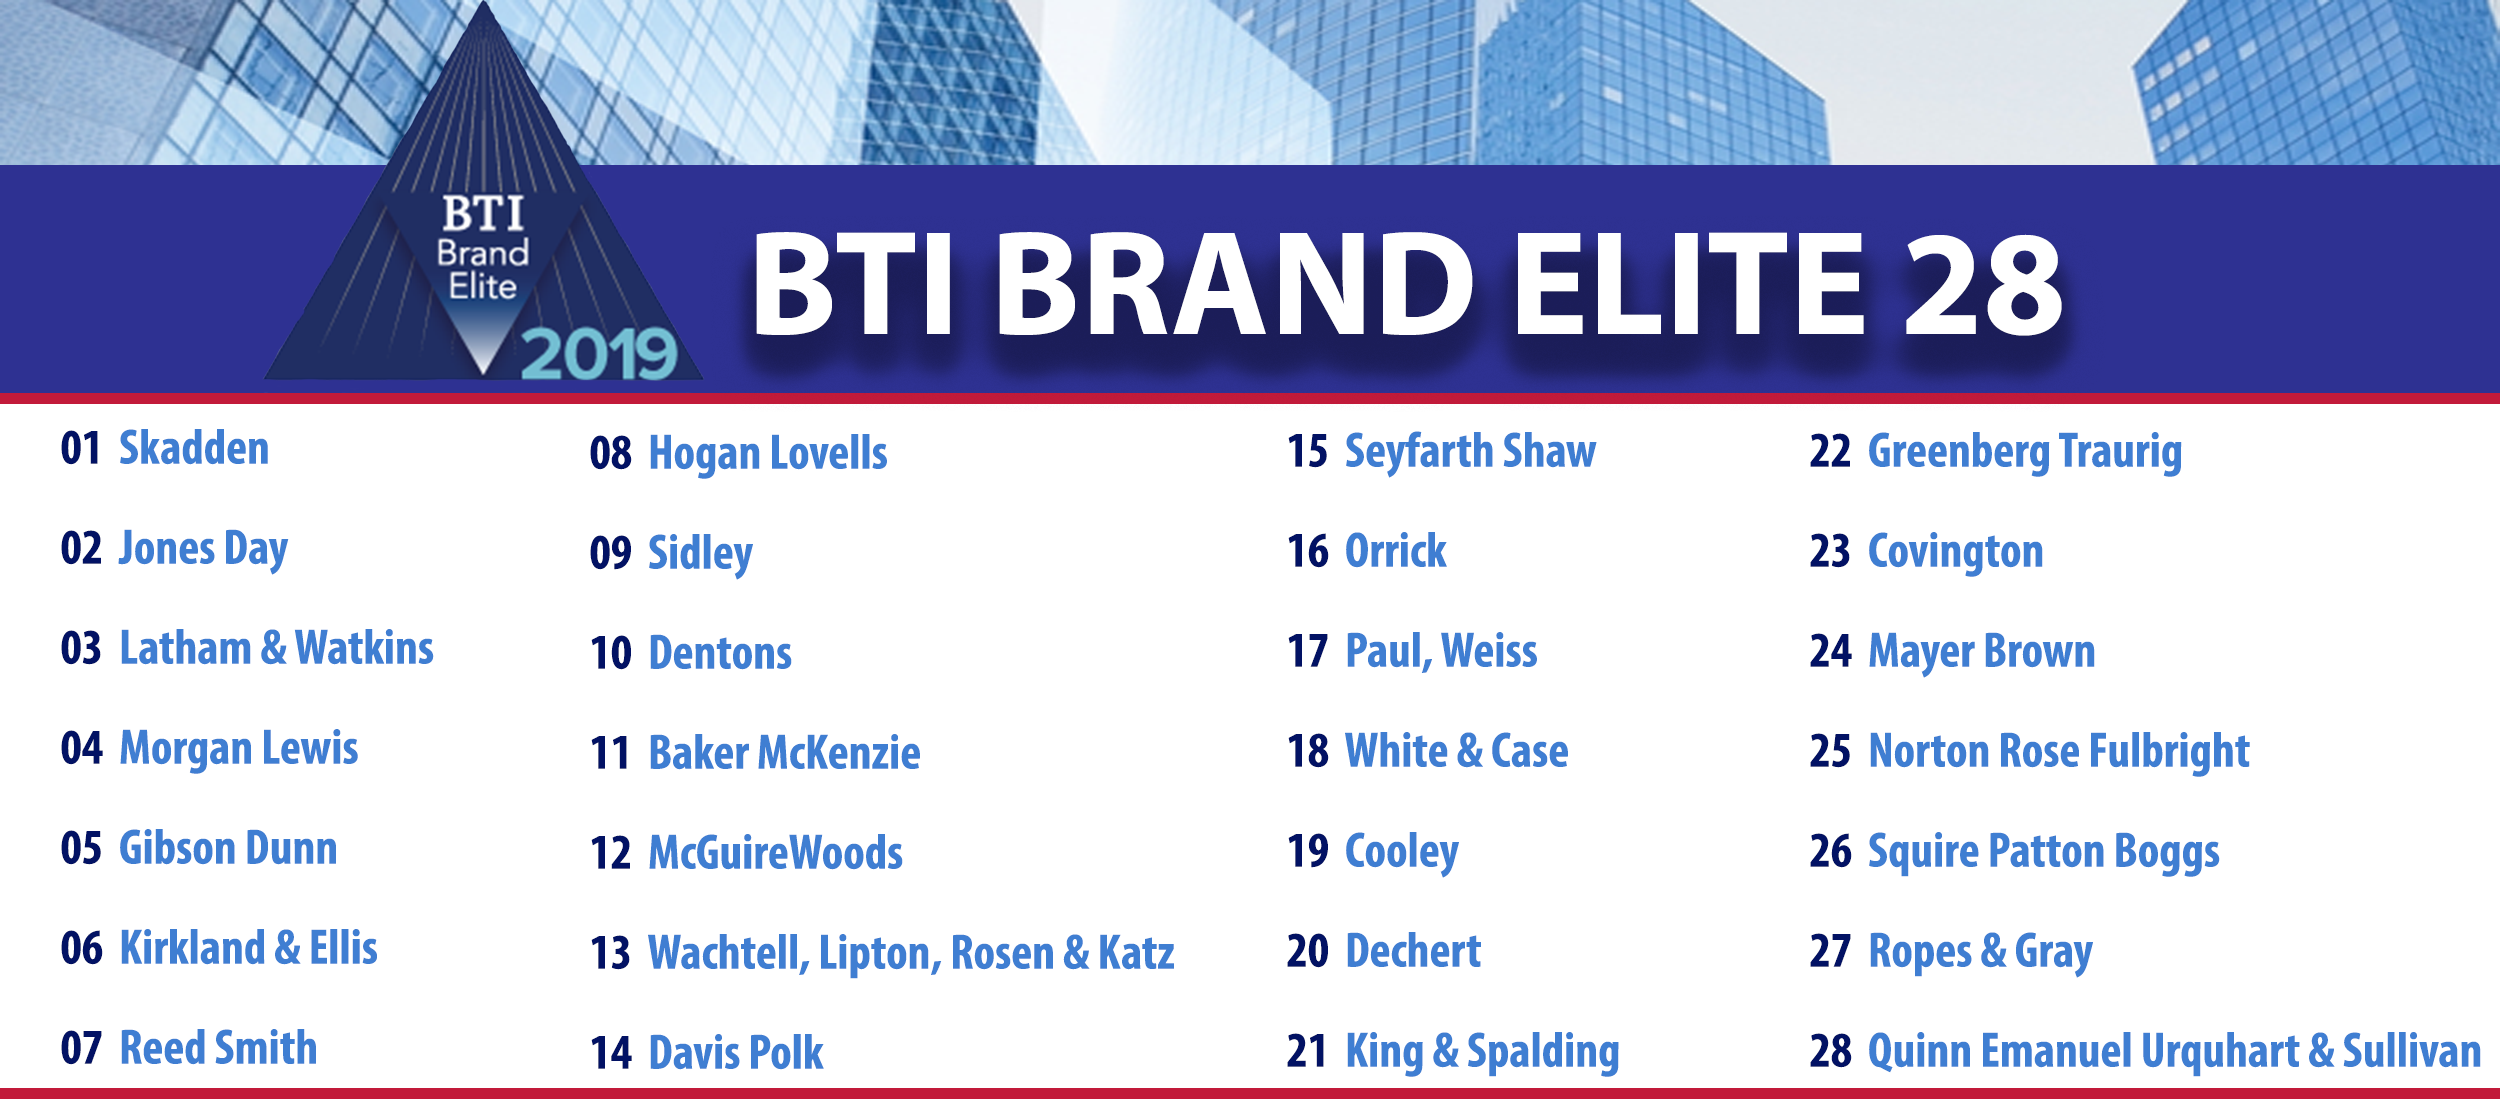 Brand-Elite-28-Launch-two.png